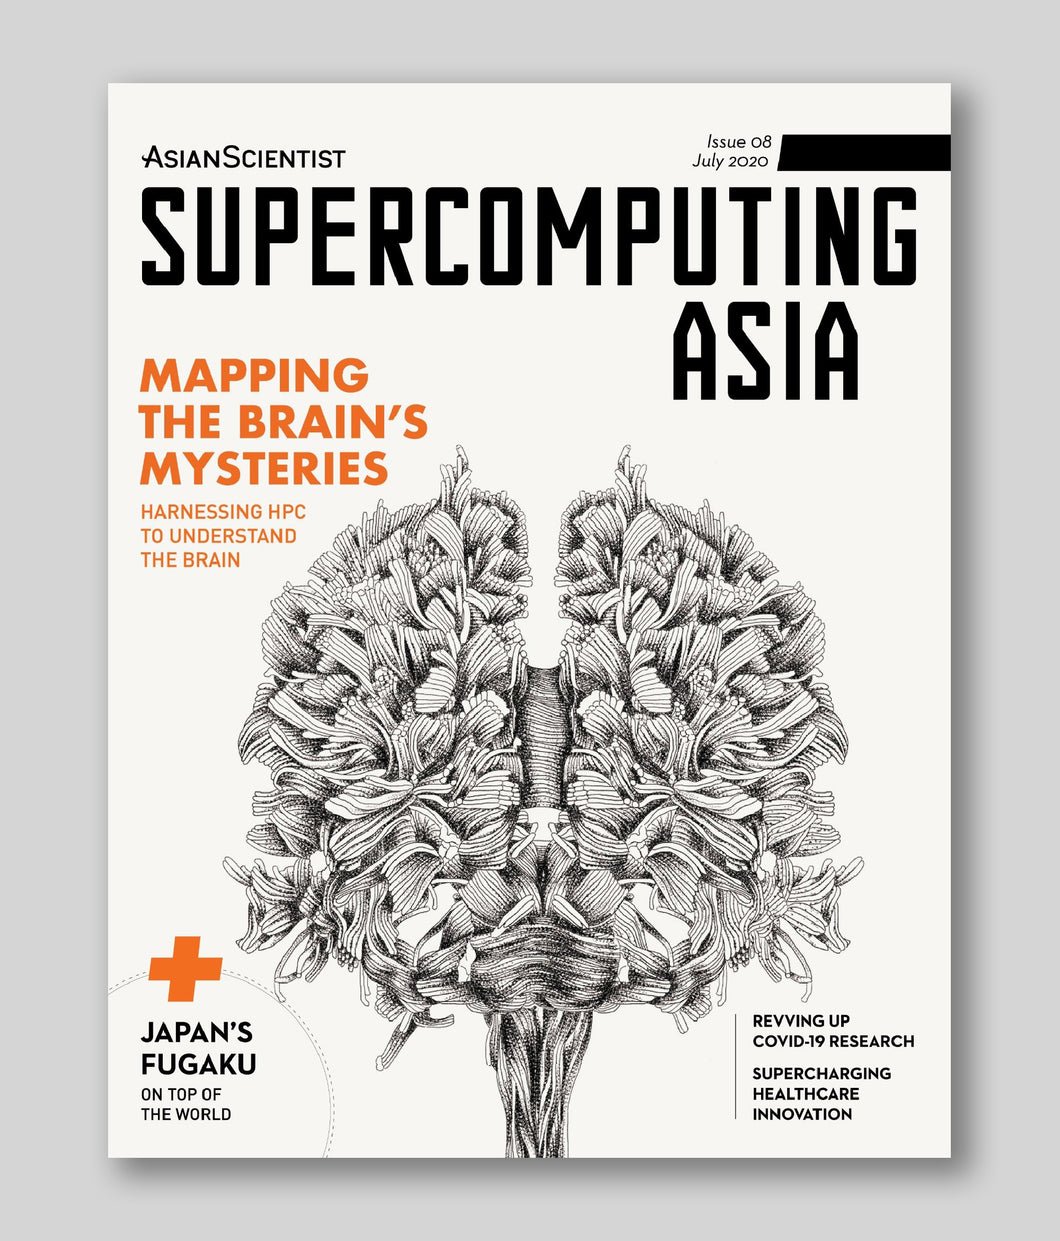 Supercomputing Asia (July 2020)